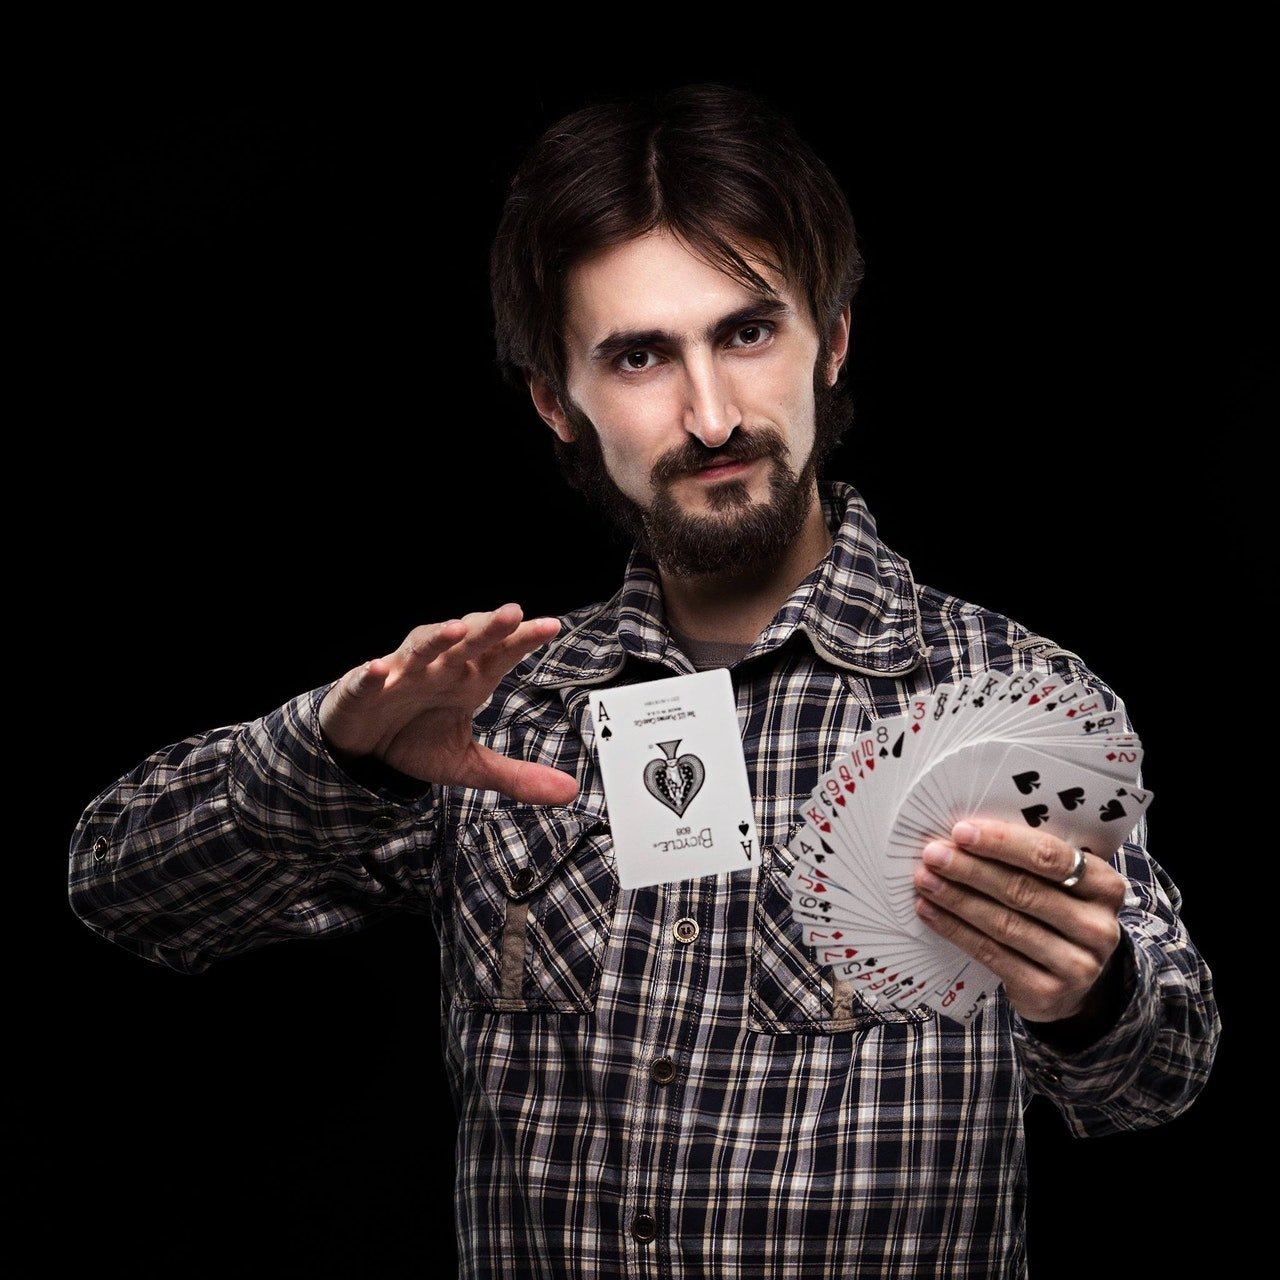 Photo of a magician holding a deck of cards | Photo: Pexels